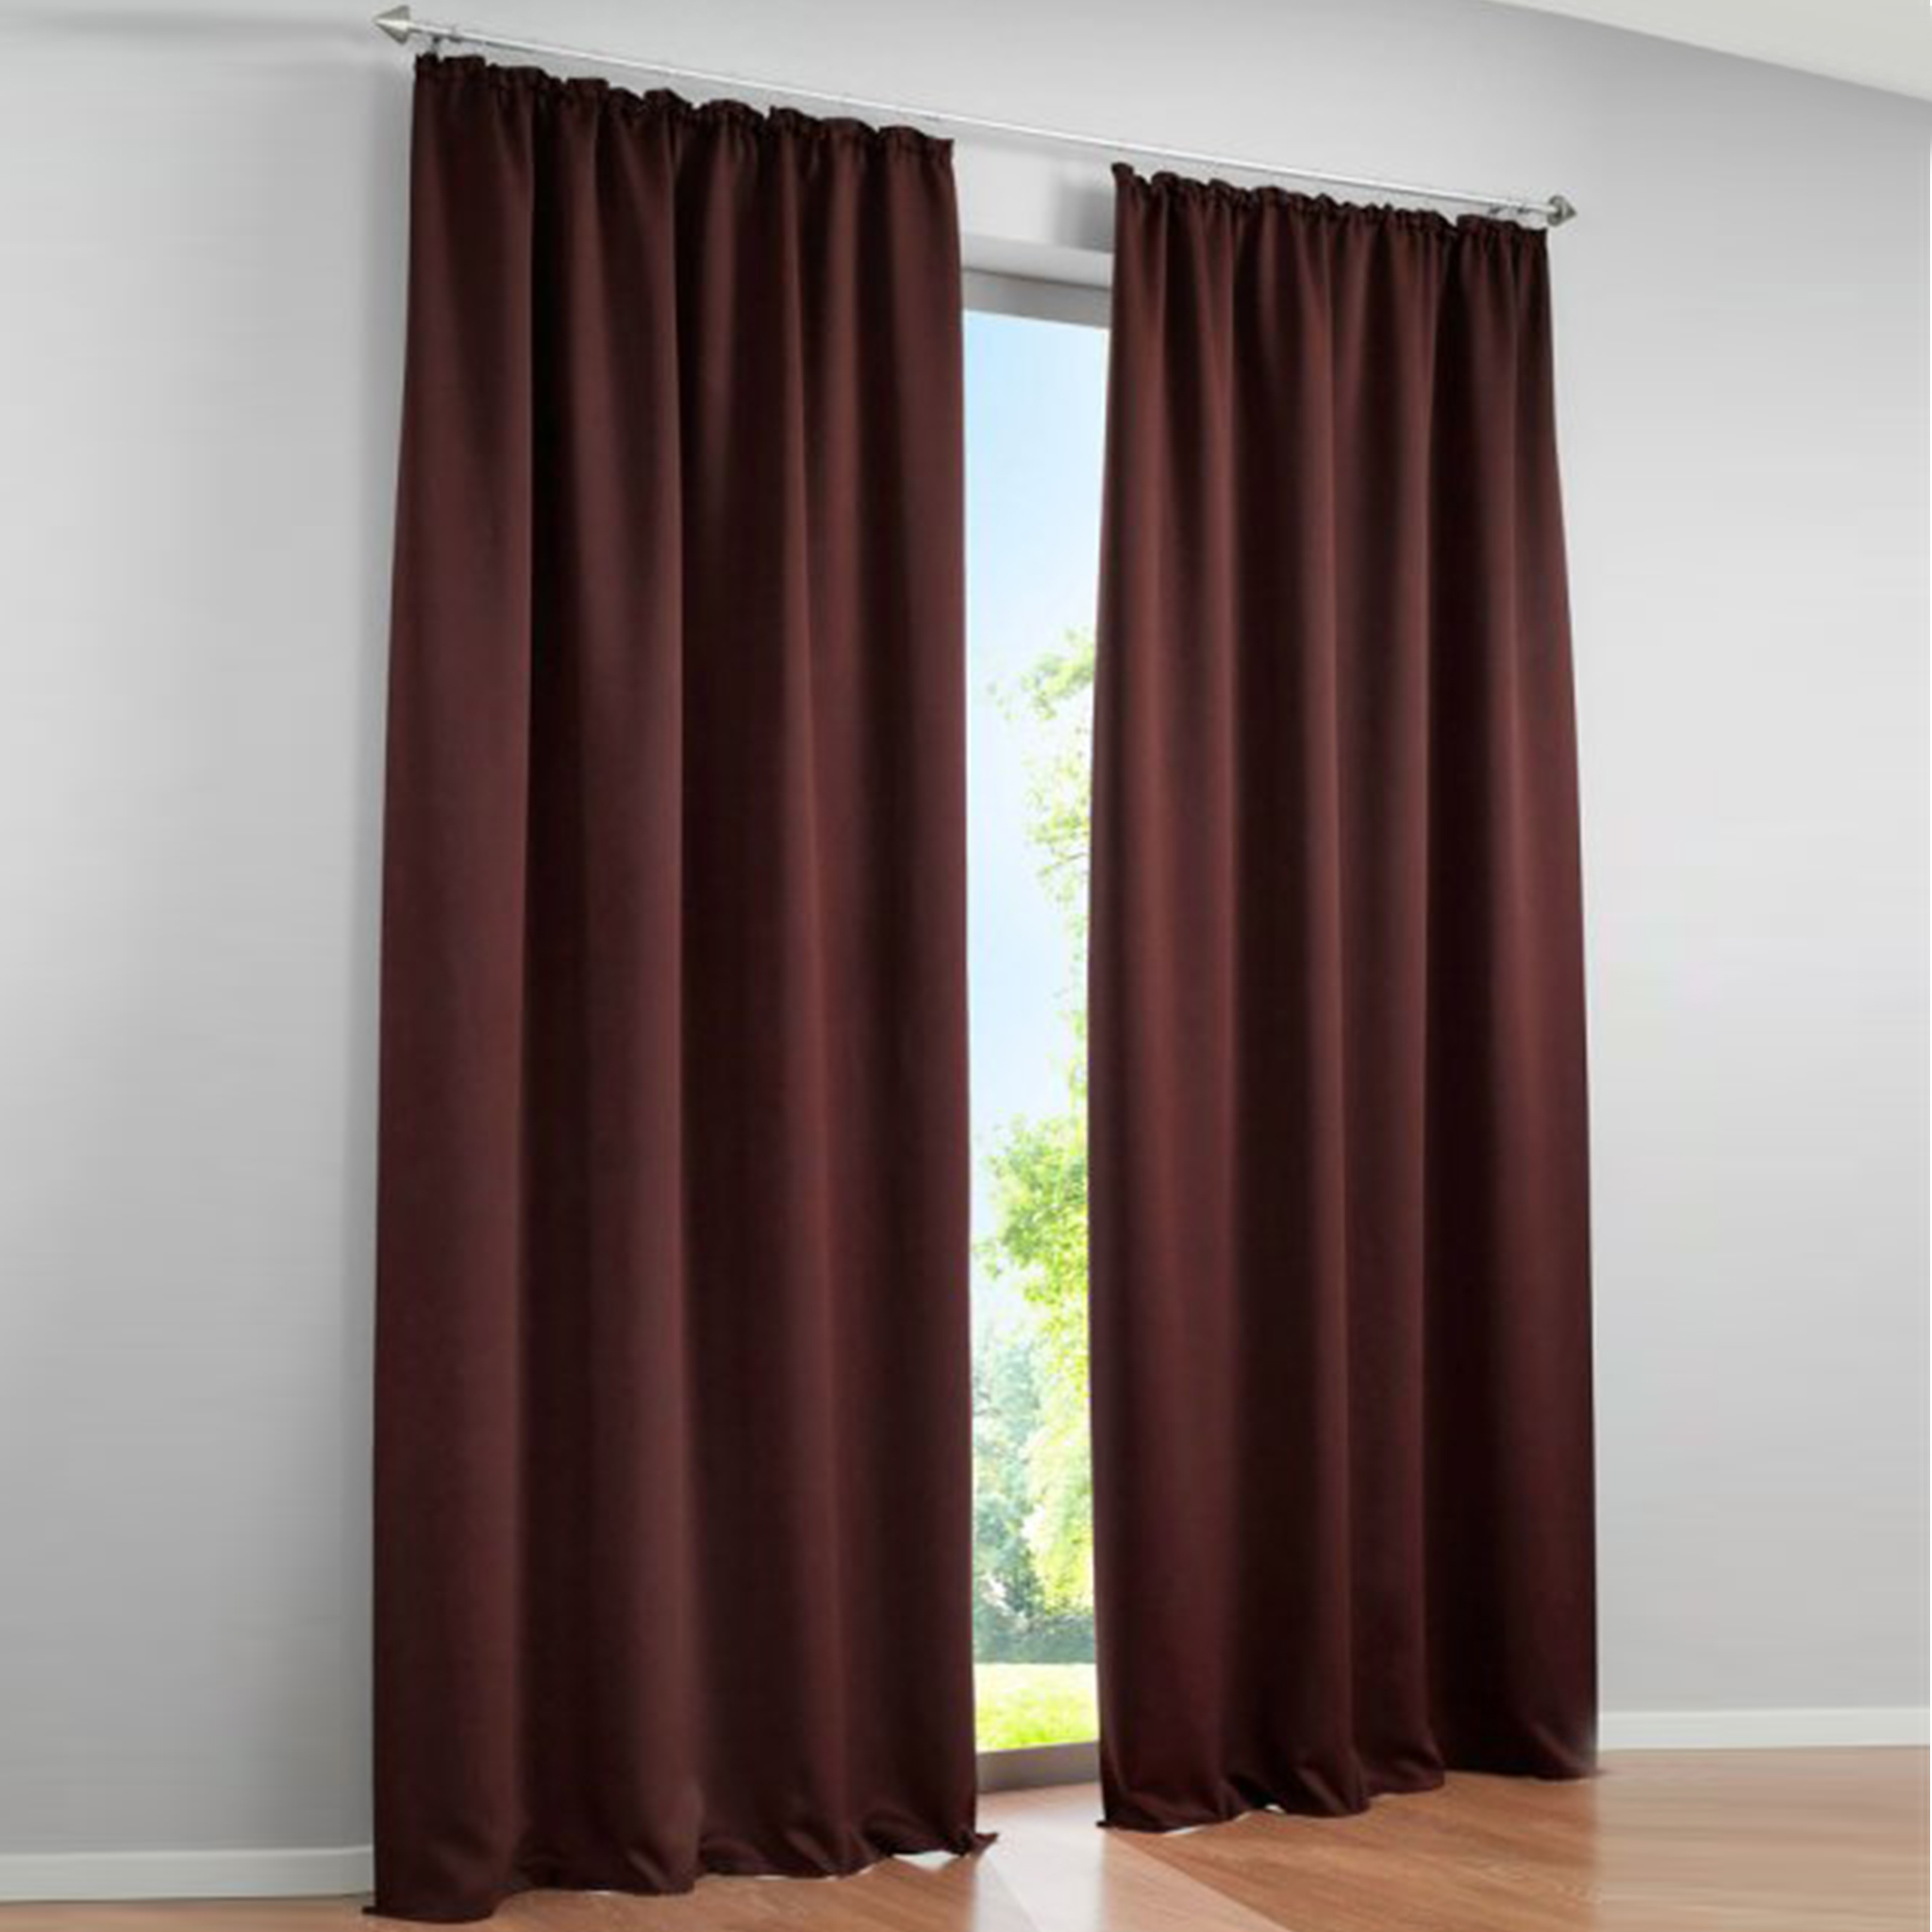 fabric luna sub categories singapore curtains coated blackout curtain sound absorbing